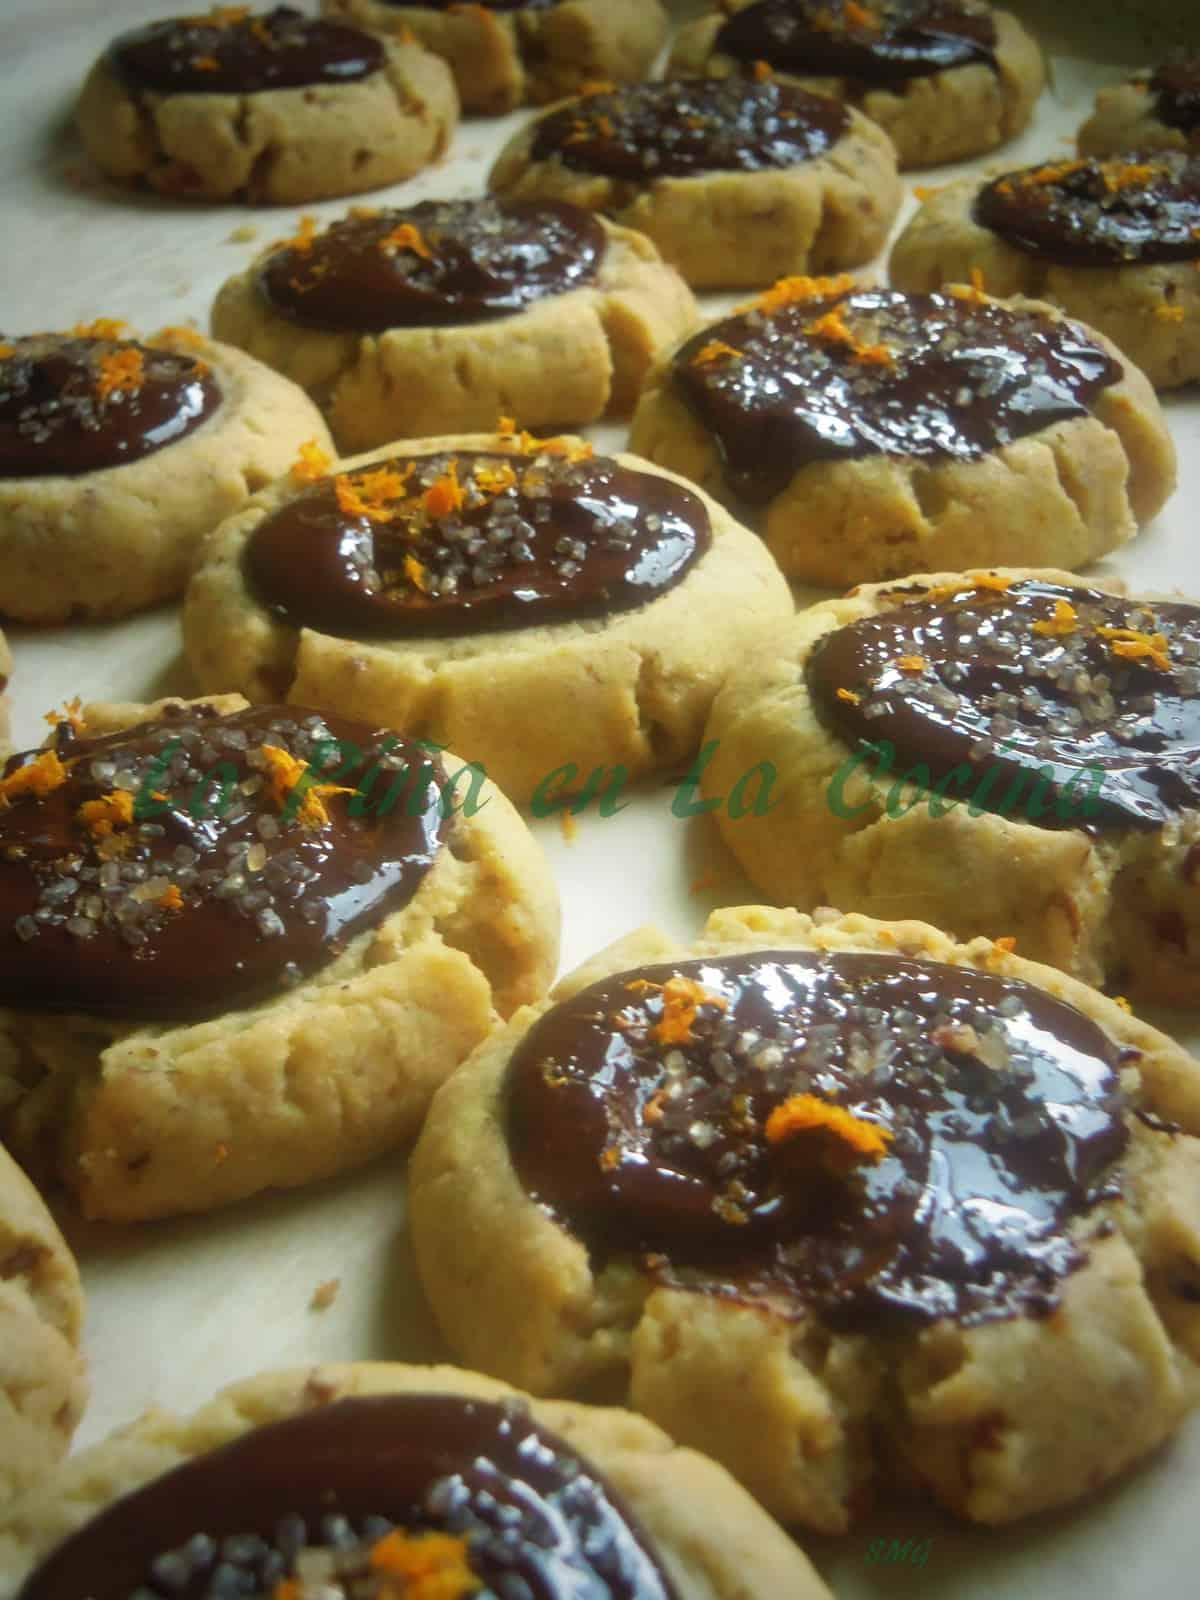 Hojarascas with dark Mexican Chocolate and Orange Zest